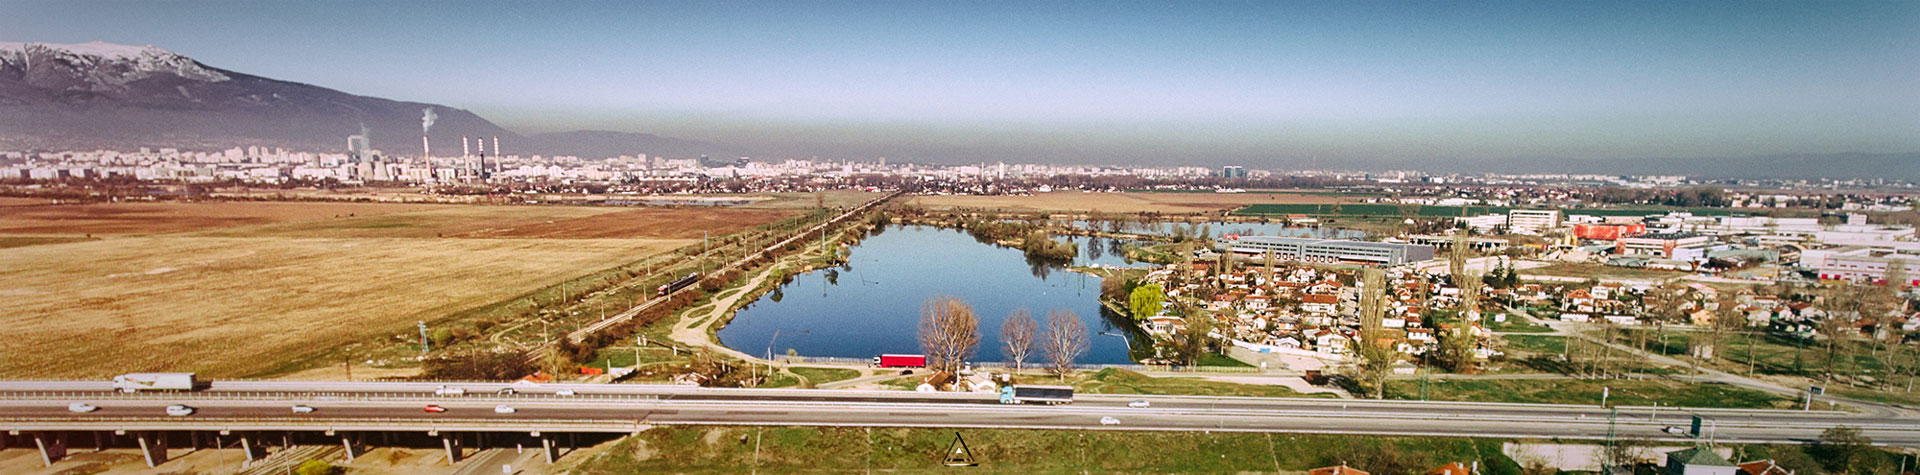 Luba6ky-Drone-Photography-picture-2